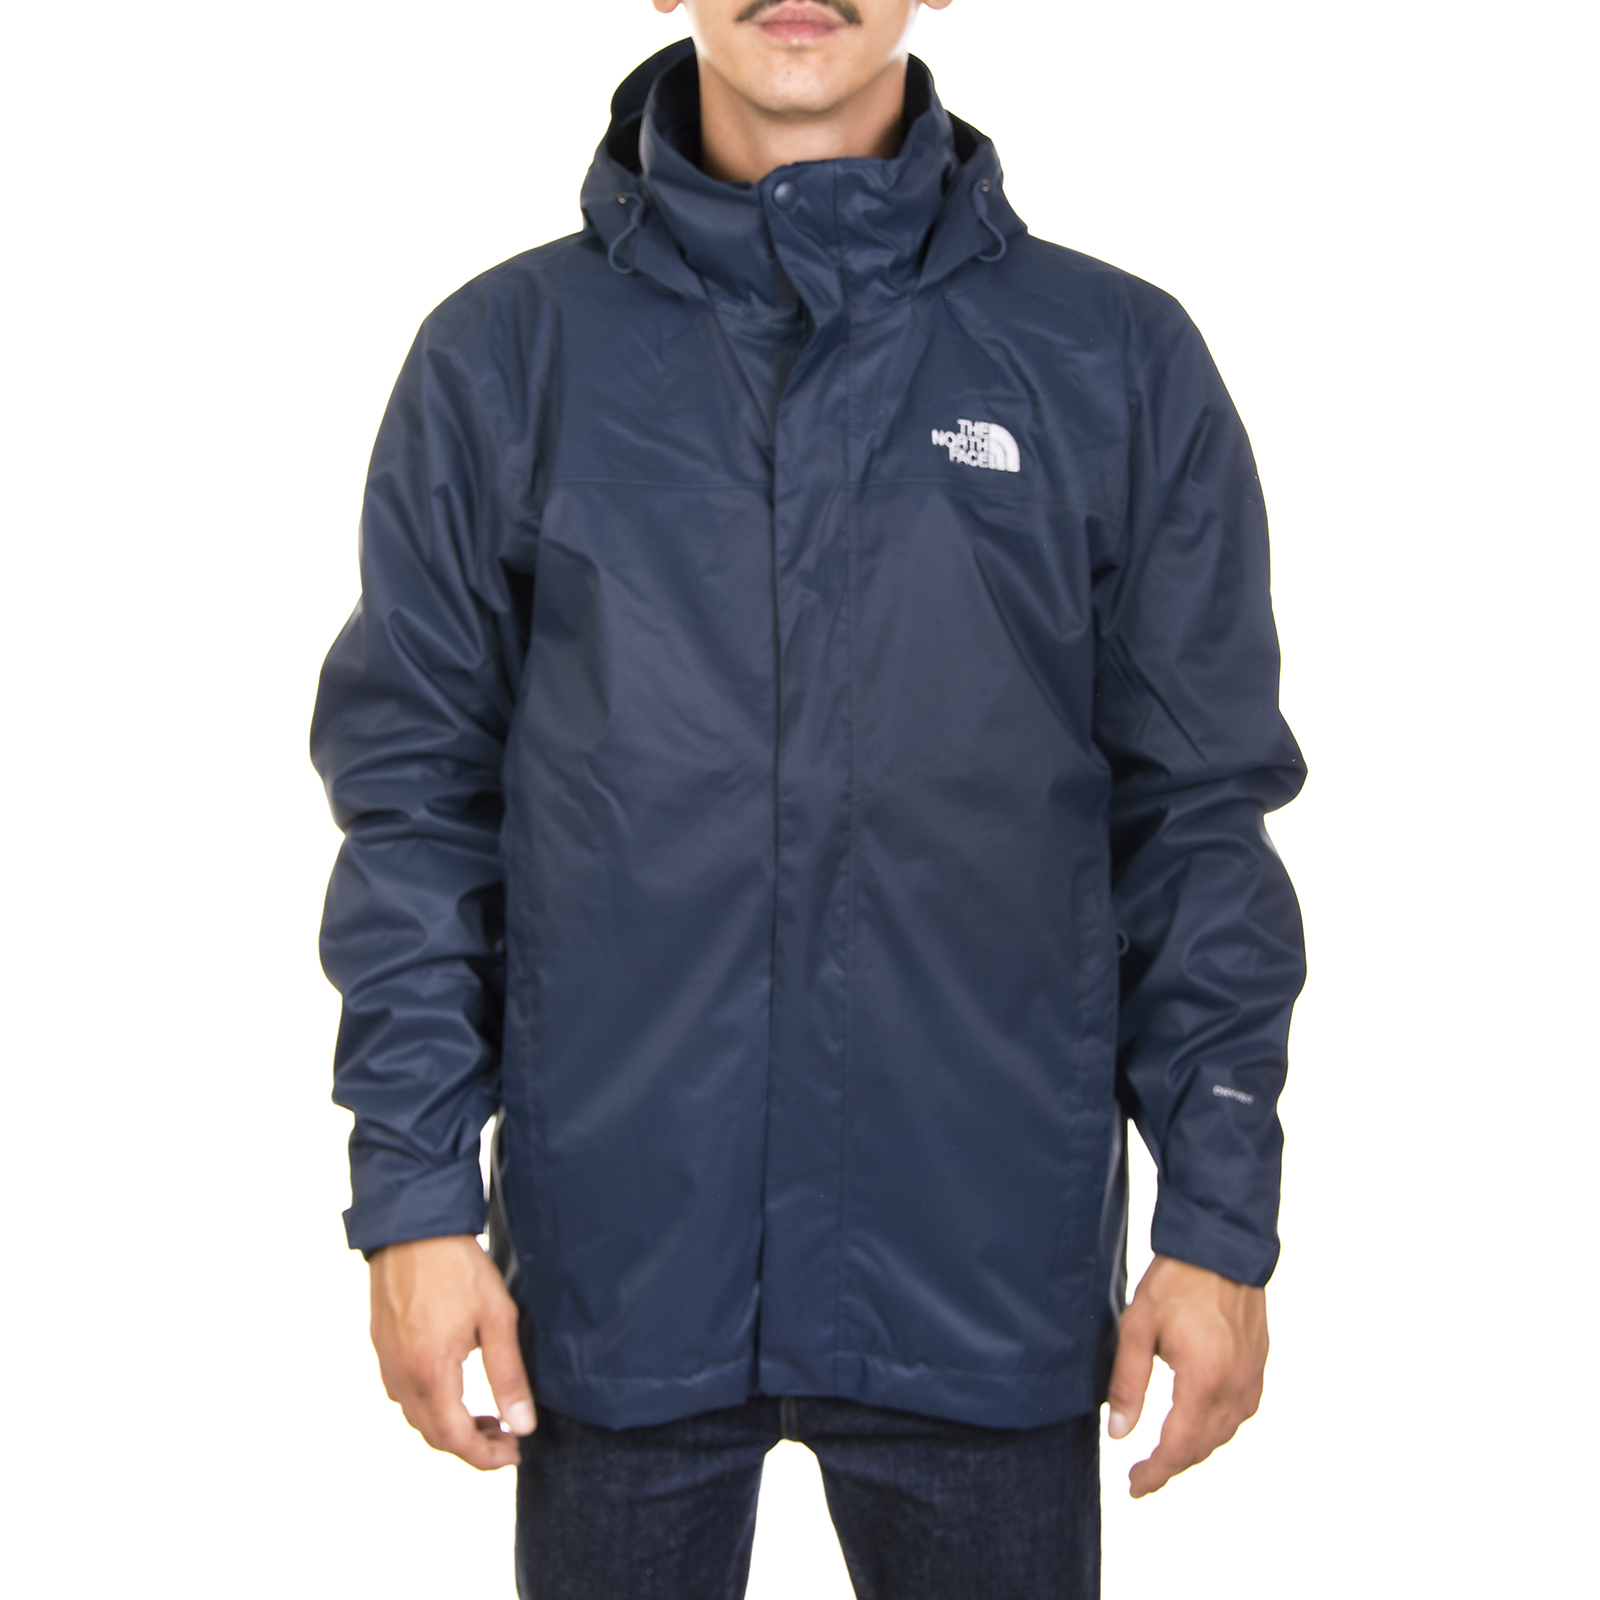 The North Face Giacche   Jacket Uomo M Evolve Ii Tri Jkt Urban Navy ... ce31ff72a2ef